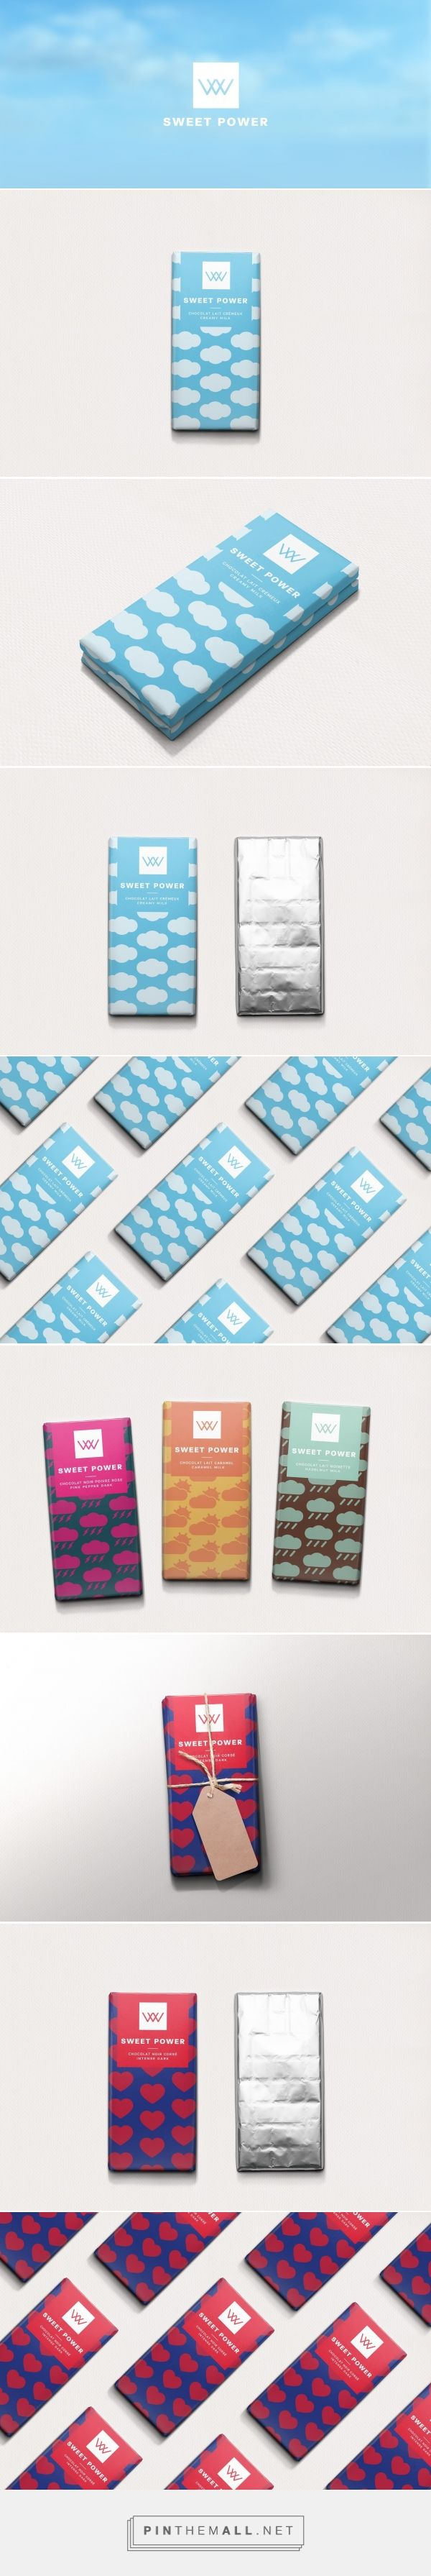 Sweet Power (Student Project) - Packaging of the World - Creative Package Design Gallery - http://www.packagingoftheworld.com/2016/08/sweet-power-student-project.html